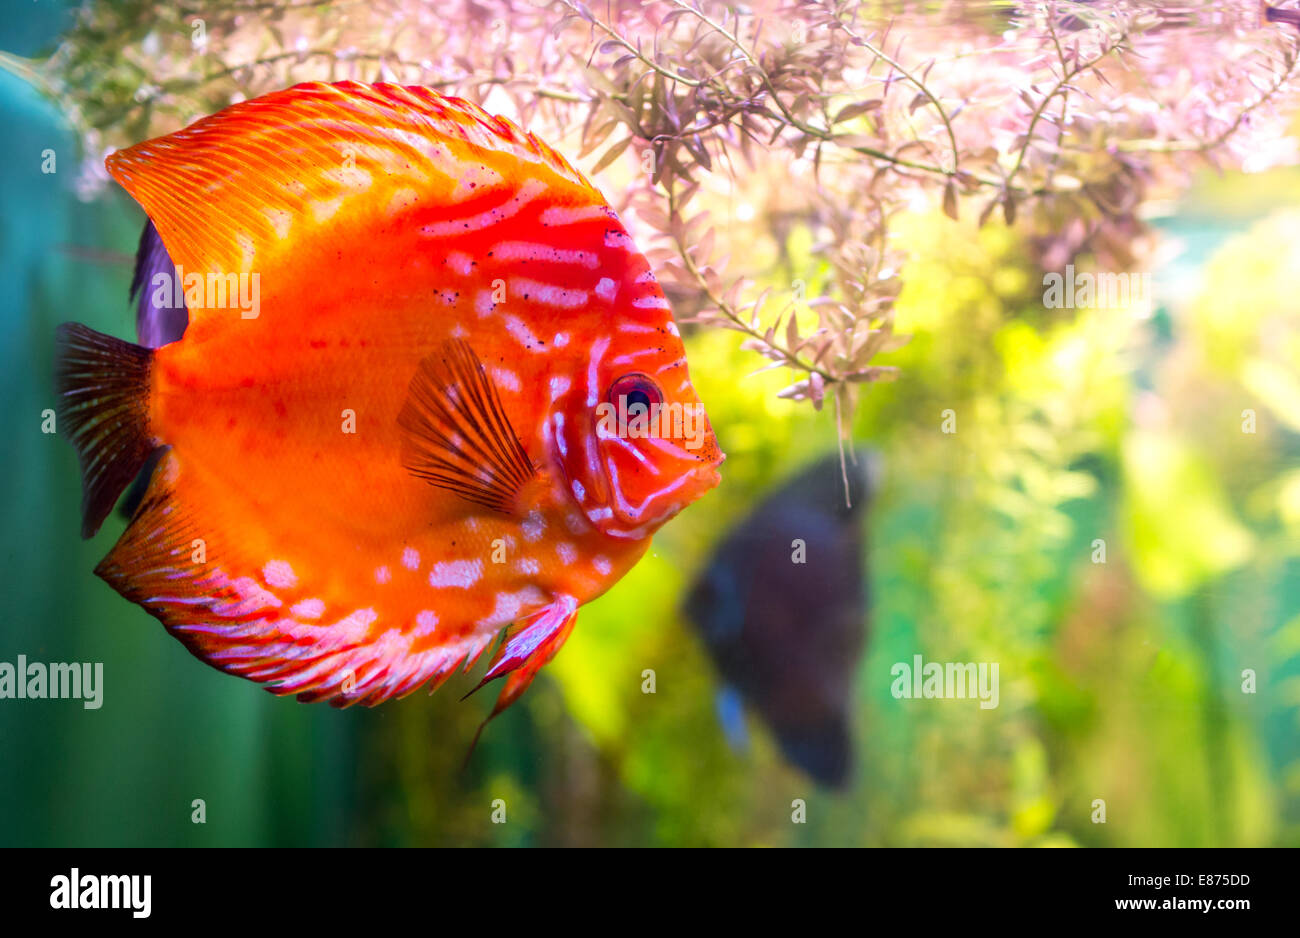 Striped Discus Stock Photos & Striped Discus Stock Images - Alamy